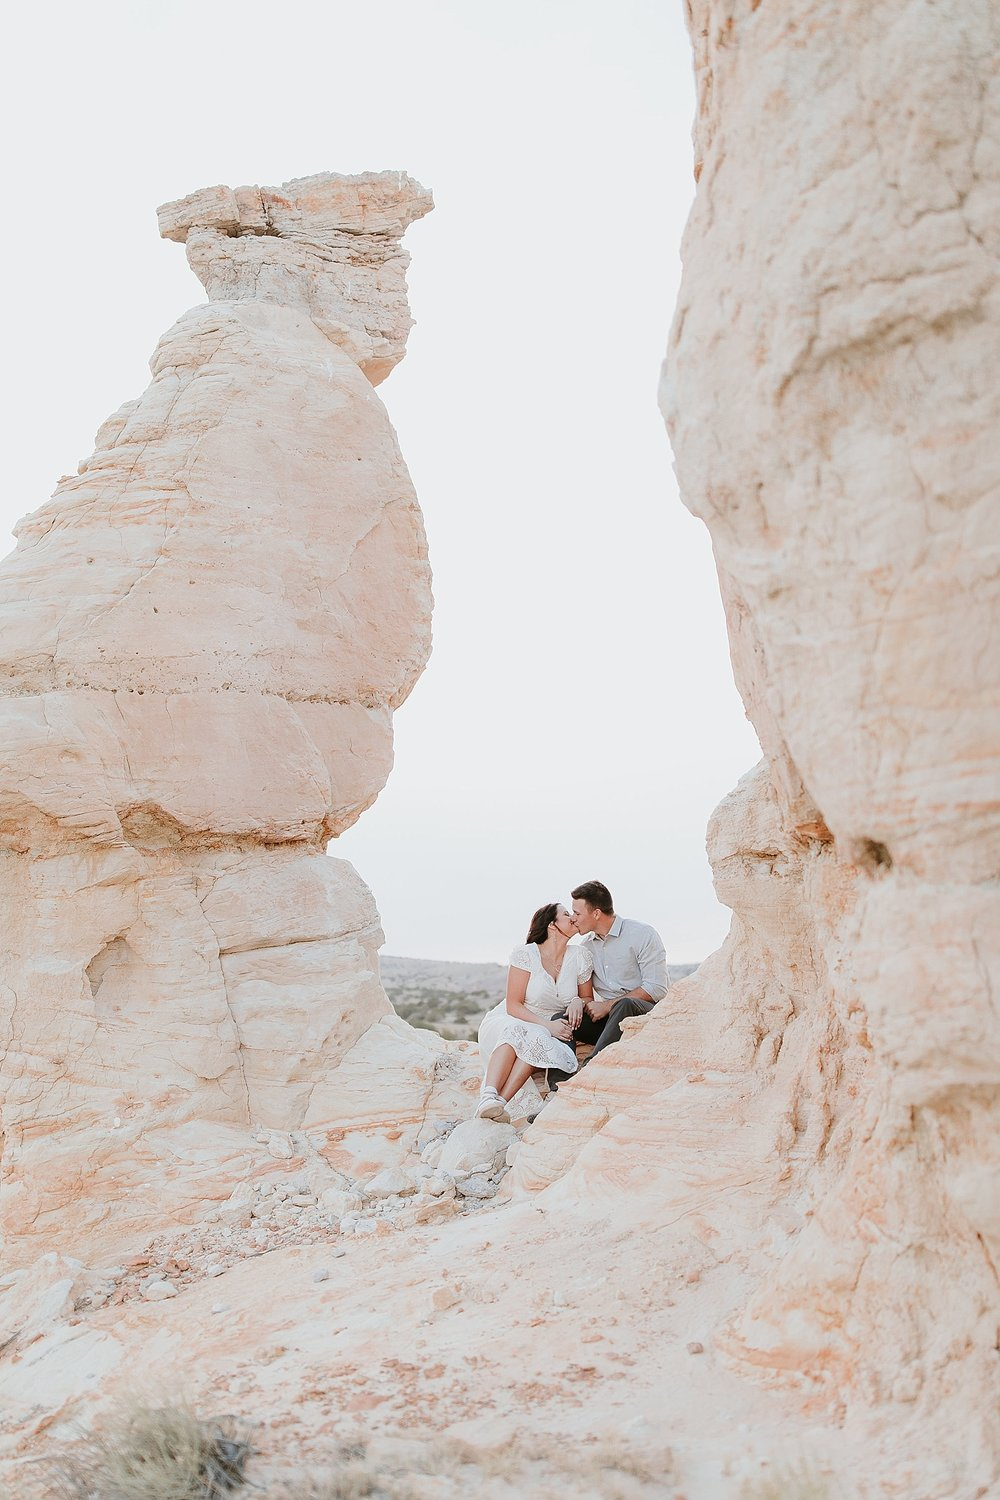 Alicia+lucia+photography+-+albuquerque+wedding+photographer+-+santa+fe+wedding+photography+-+new+mexico+wedding+photographer+-+new+mexico+engagement+-+desert+engagement_0020.jpg